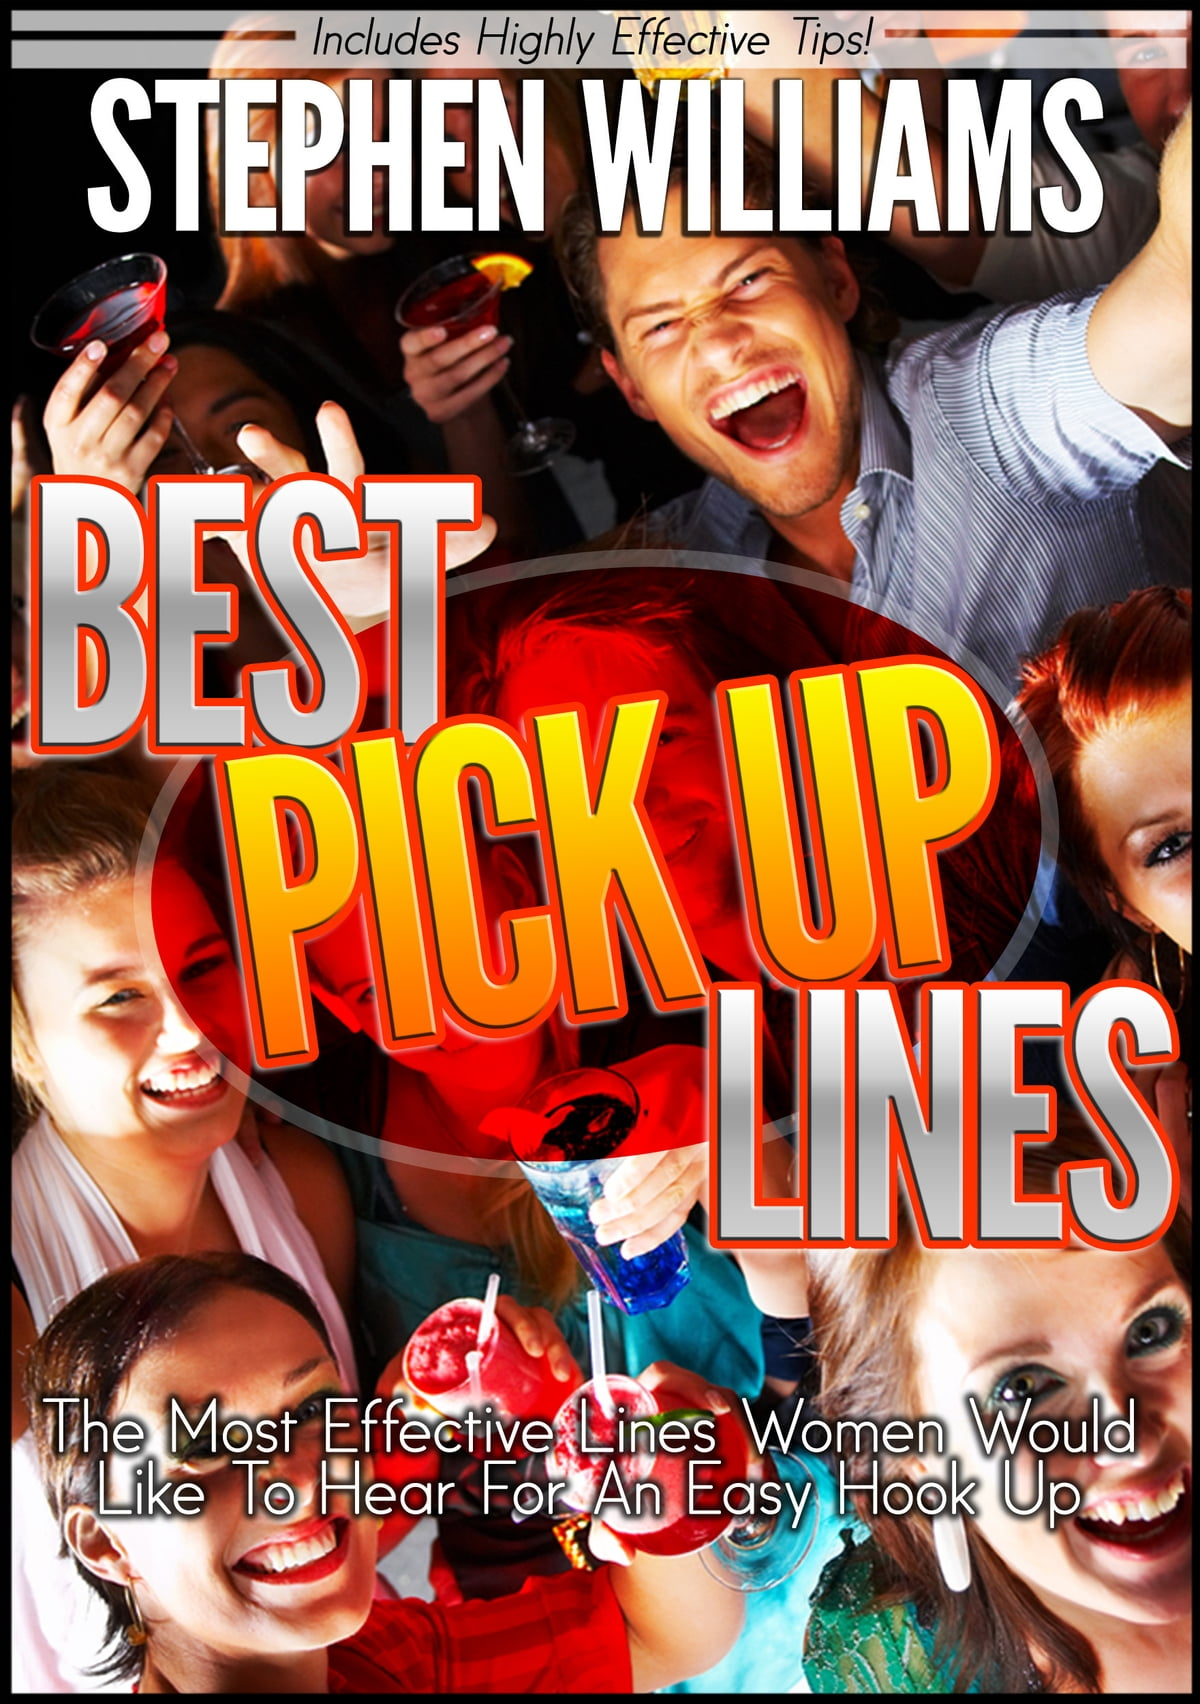 Best Pick Up Lines: The Most Effective Lines Women Would Like To Hear For  An Easy Hook Up eBook by Stephen Williams - 9781301419432 | Rakuten Kobo